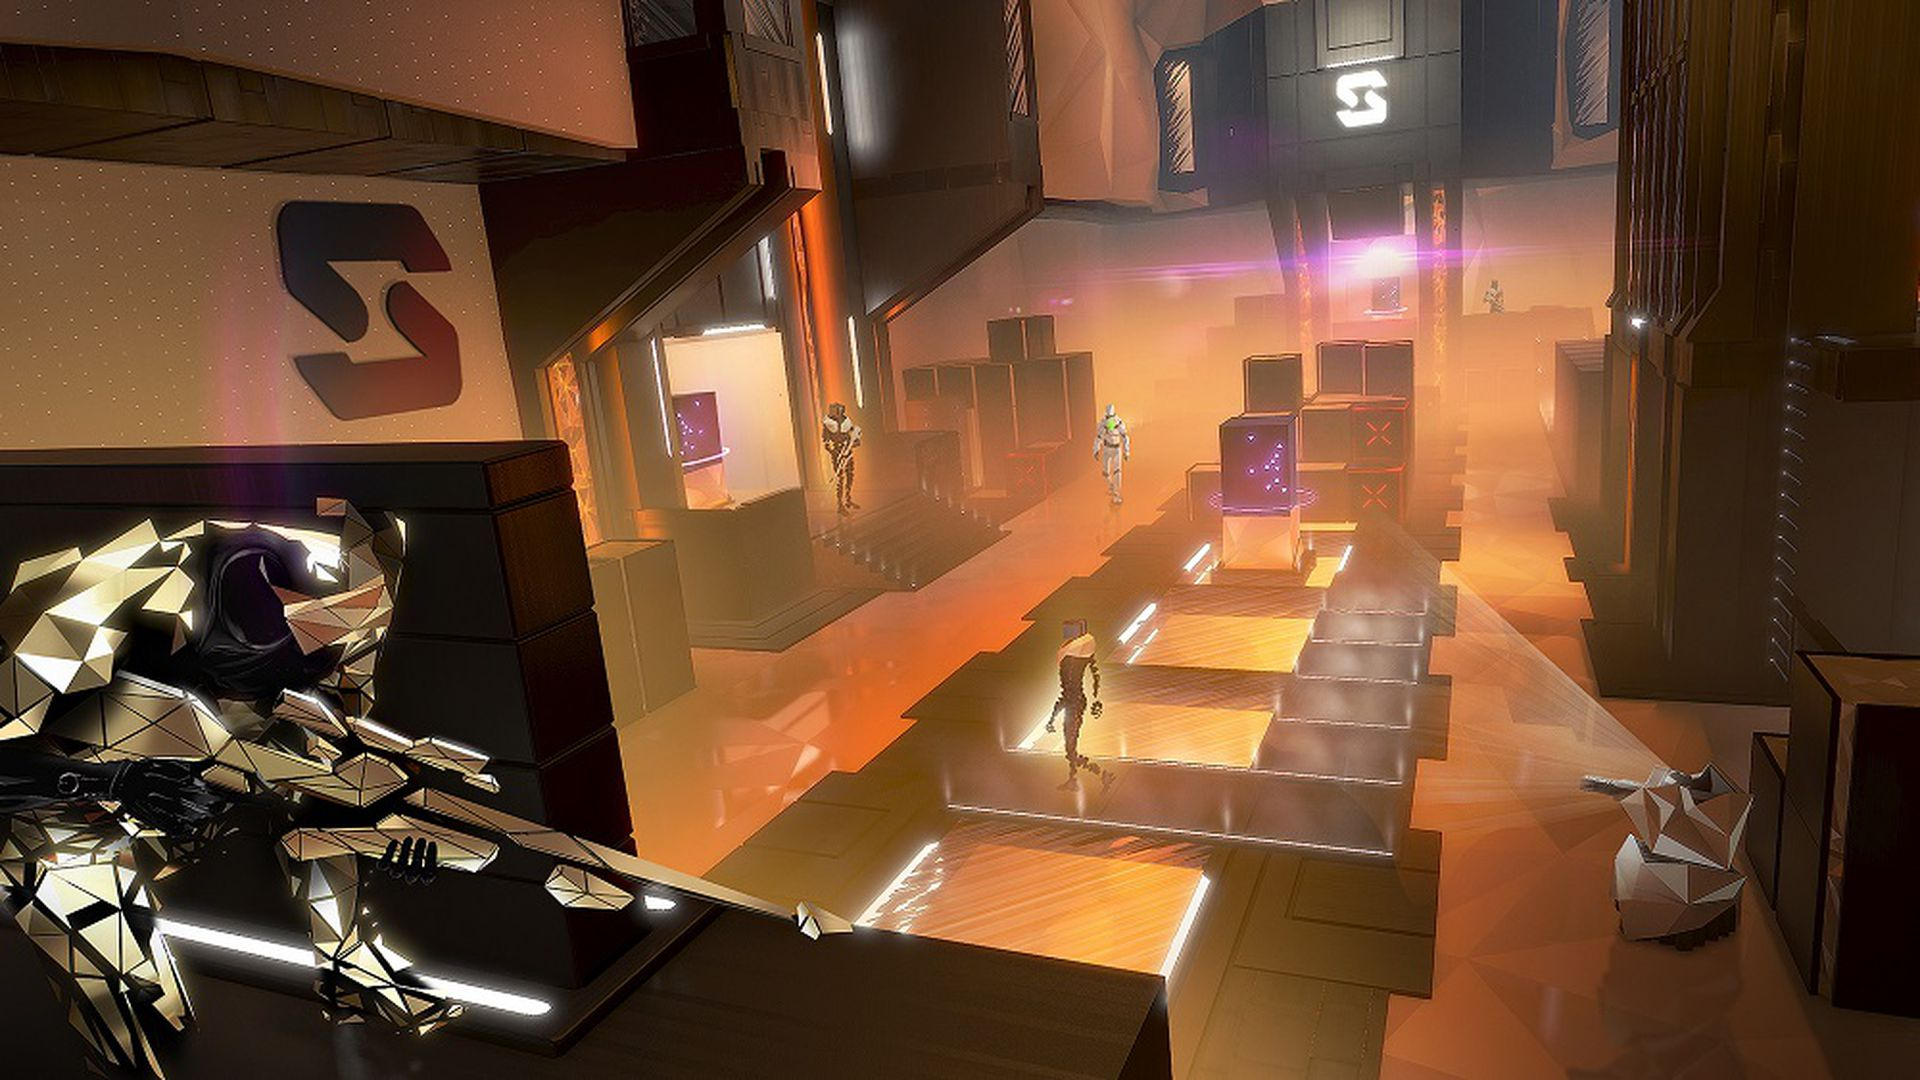 Deus Ex: Mankind Divided takes a new direction | Polygon